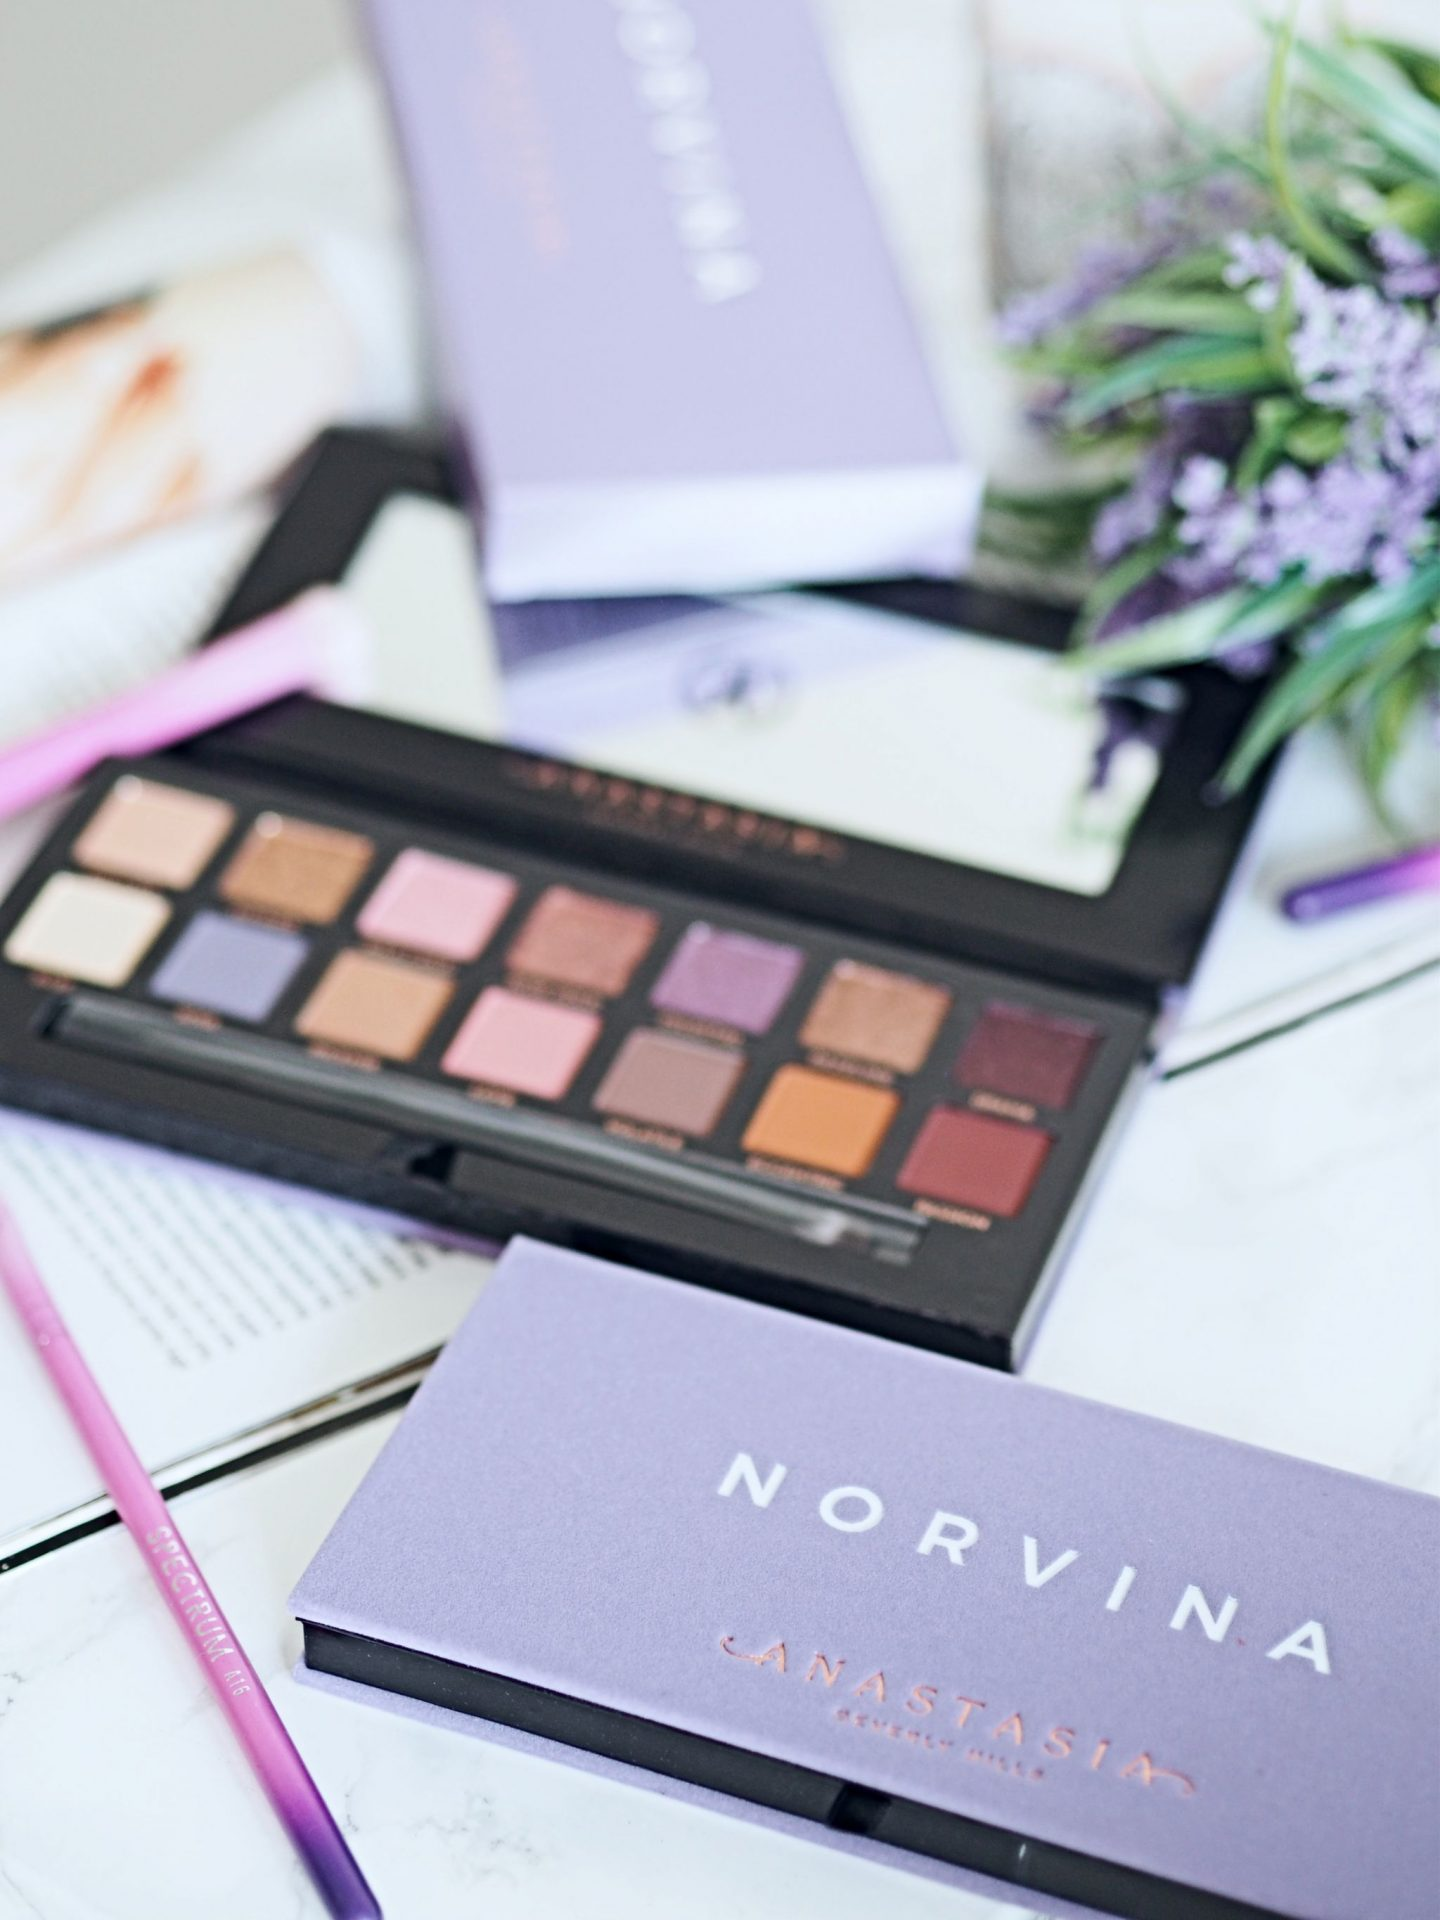 Anastasia Beverly Hills Norvina Palette Review